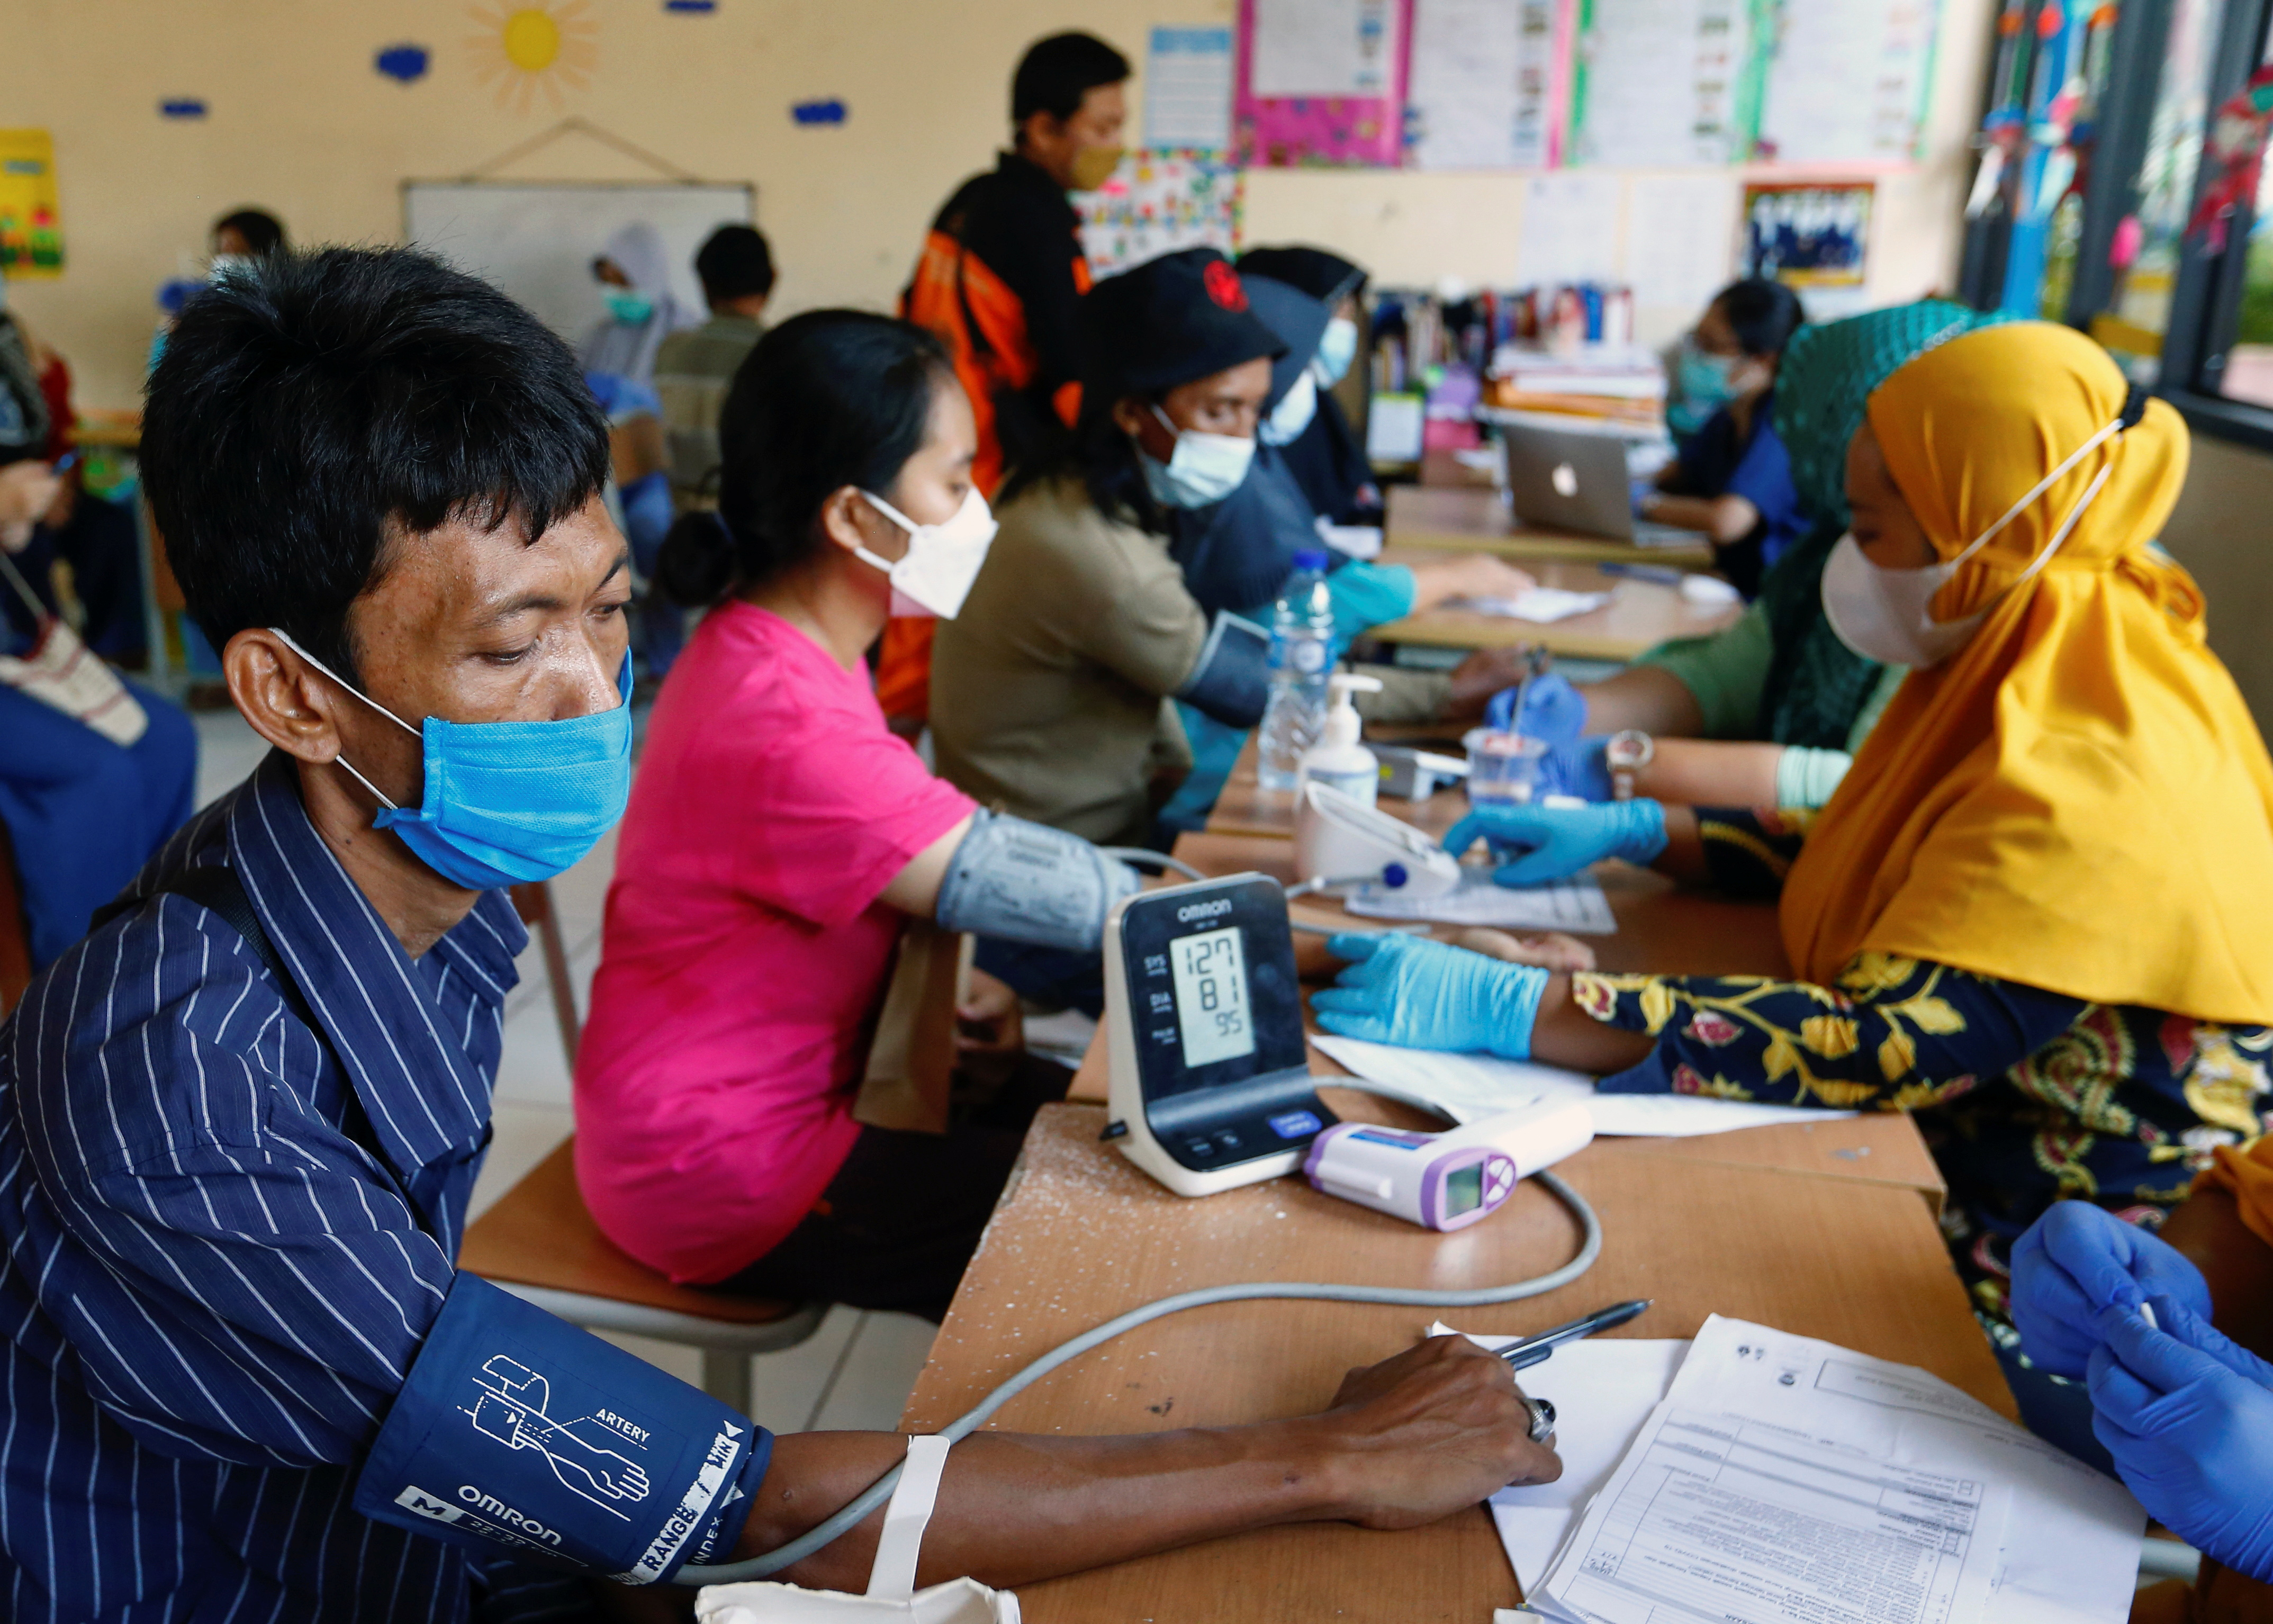 People wearing protective face masks undergo a health screening before receiving their dose of the AstraZeneca coronavirus disease (COVID-19) vaccine at a kindergarten in Jakarta, Indonesia, June 10, 2021. REUTERS/Ajeng Dinar Ulfiana